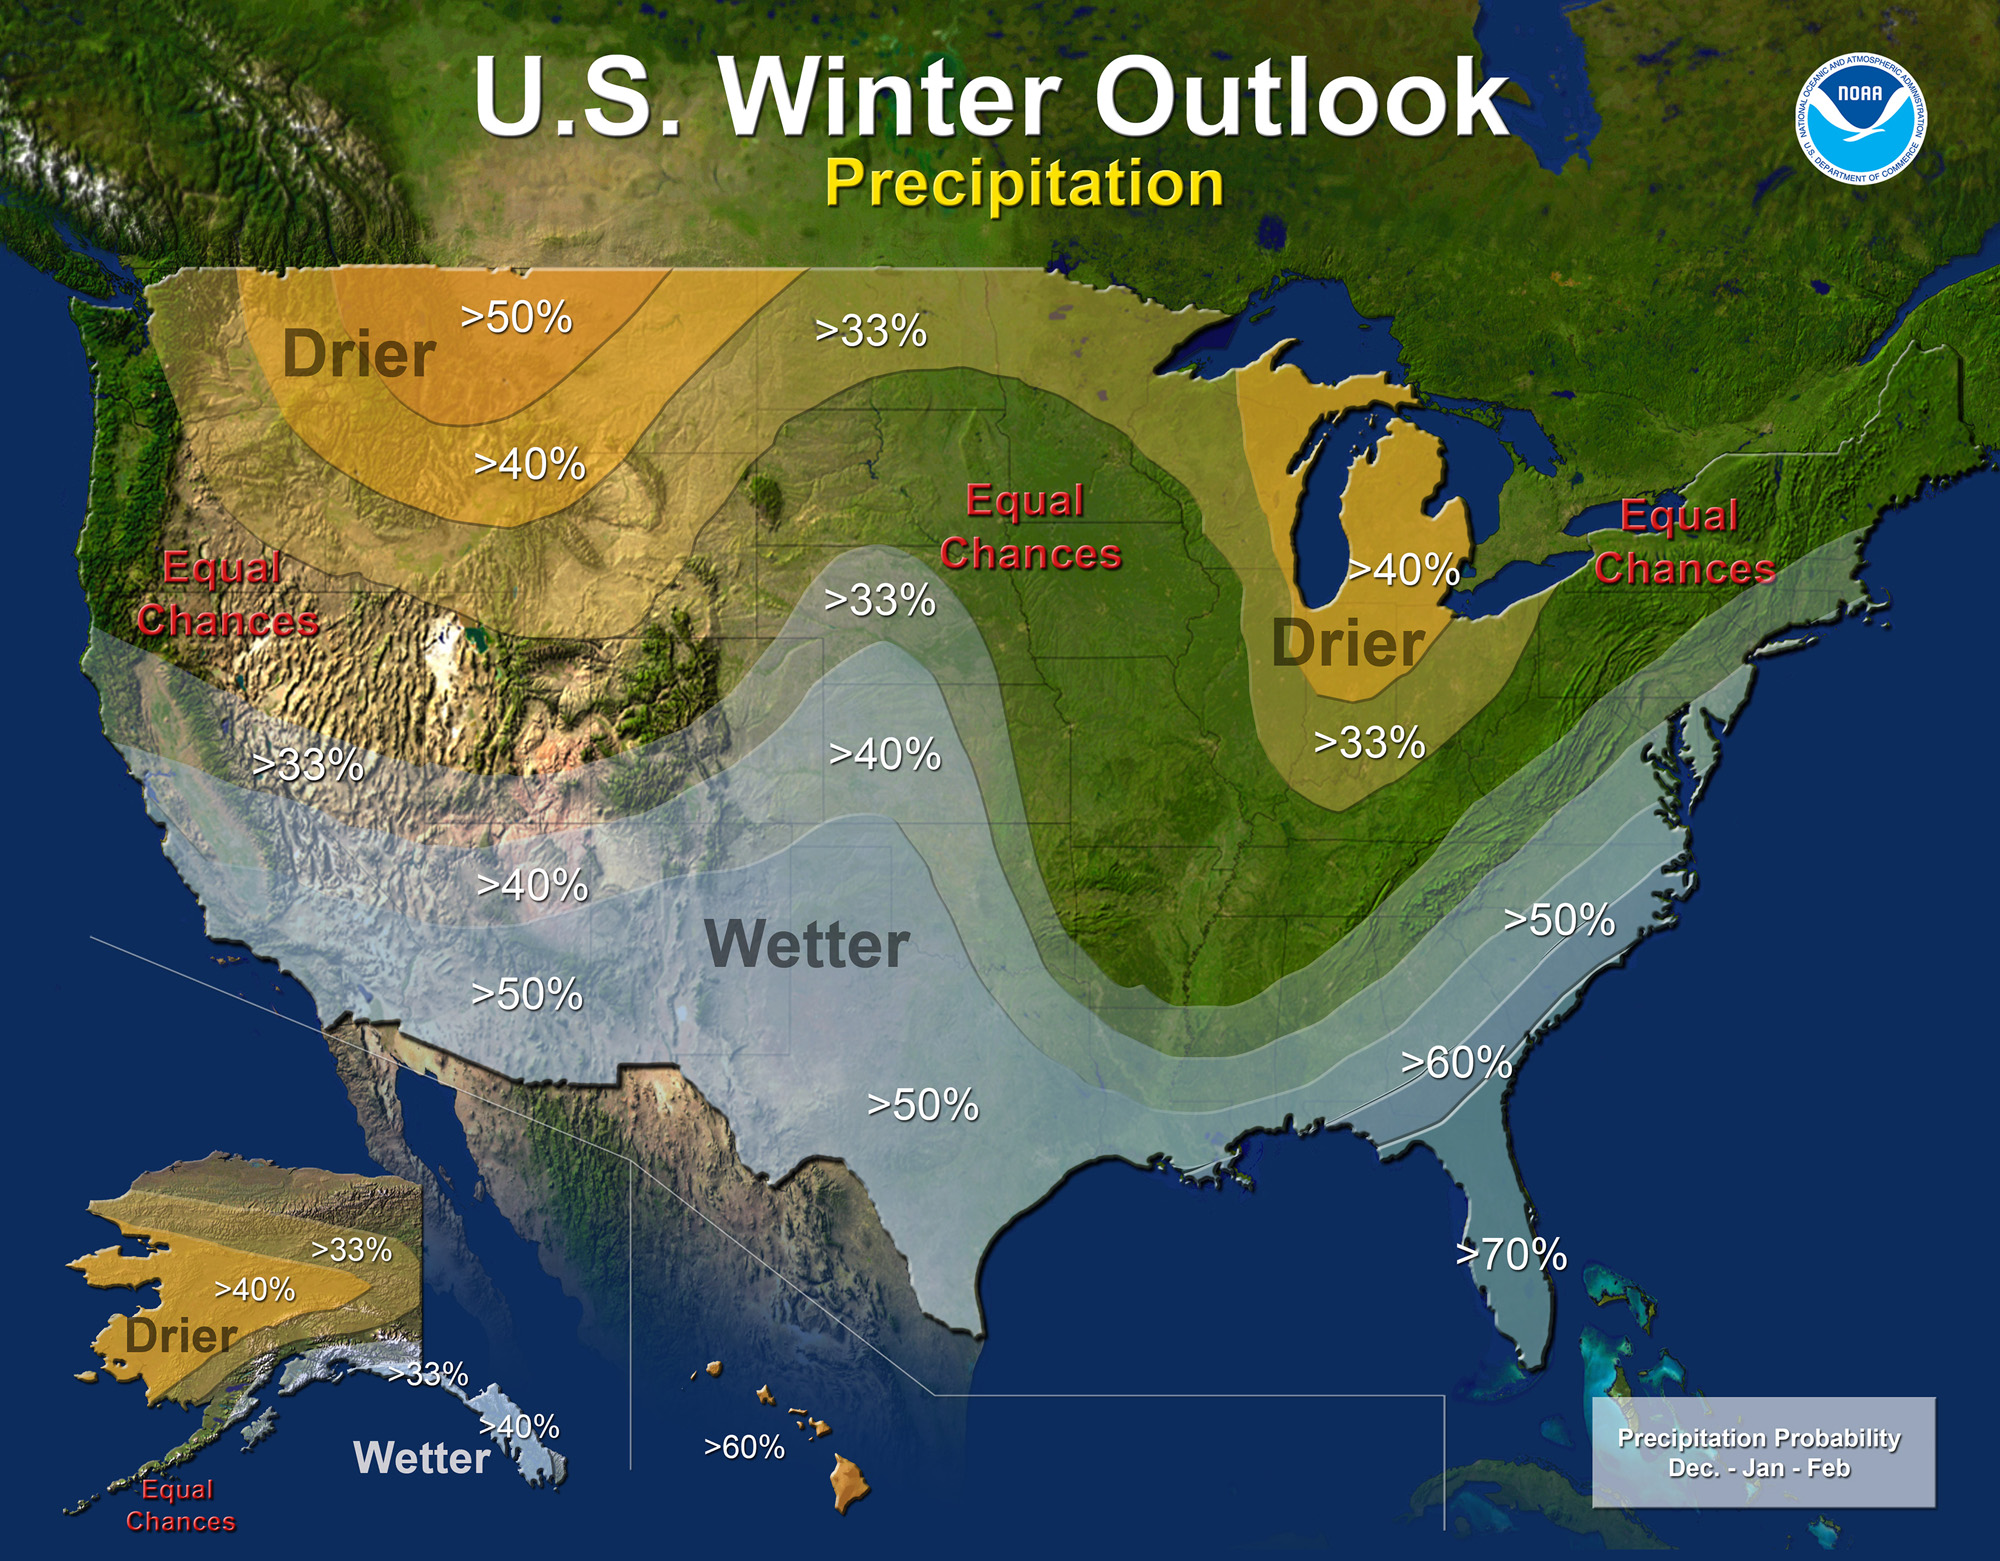 NOAA's Precipitation Outlook for the U.S.A. across the Winter of 2015- 2016.